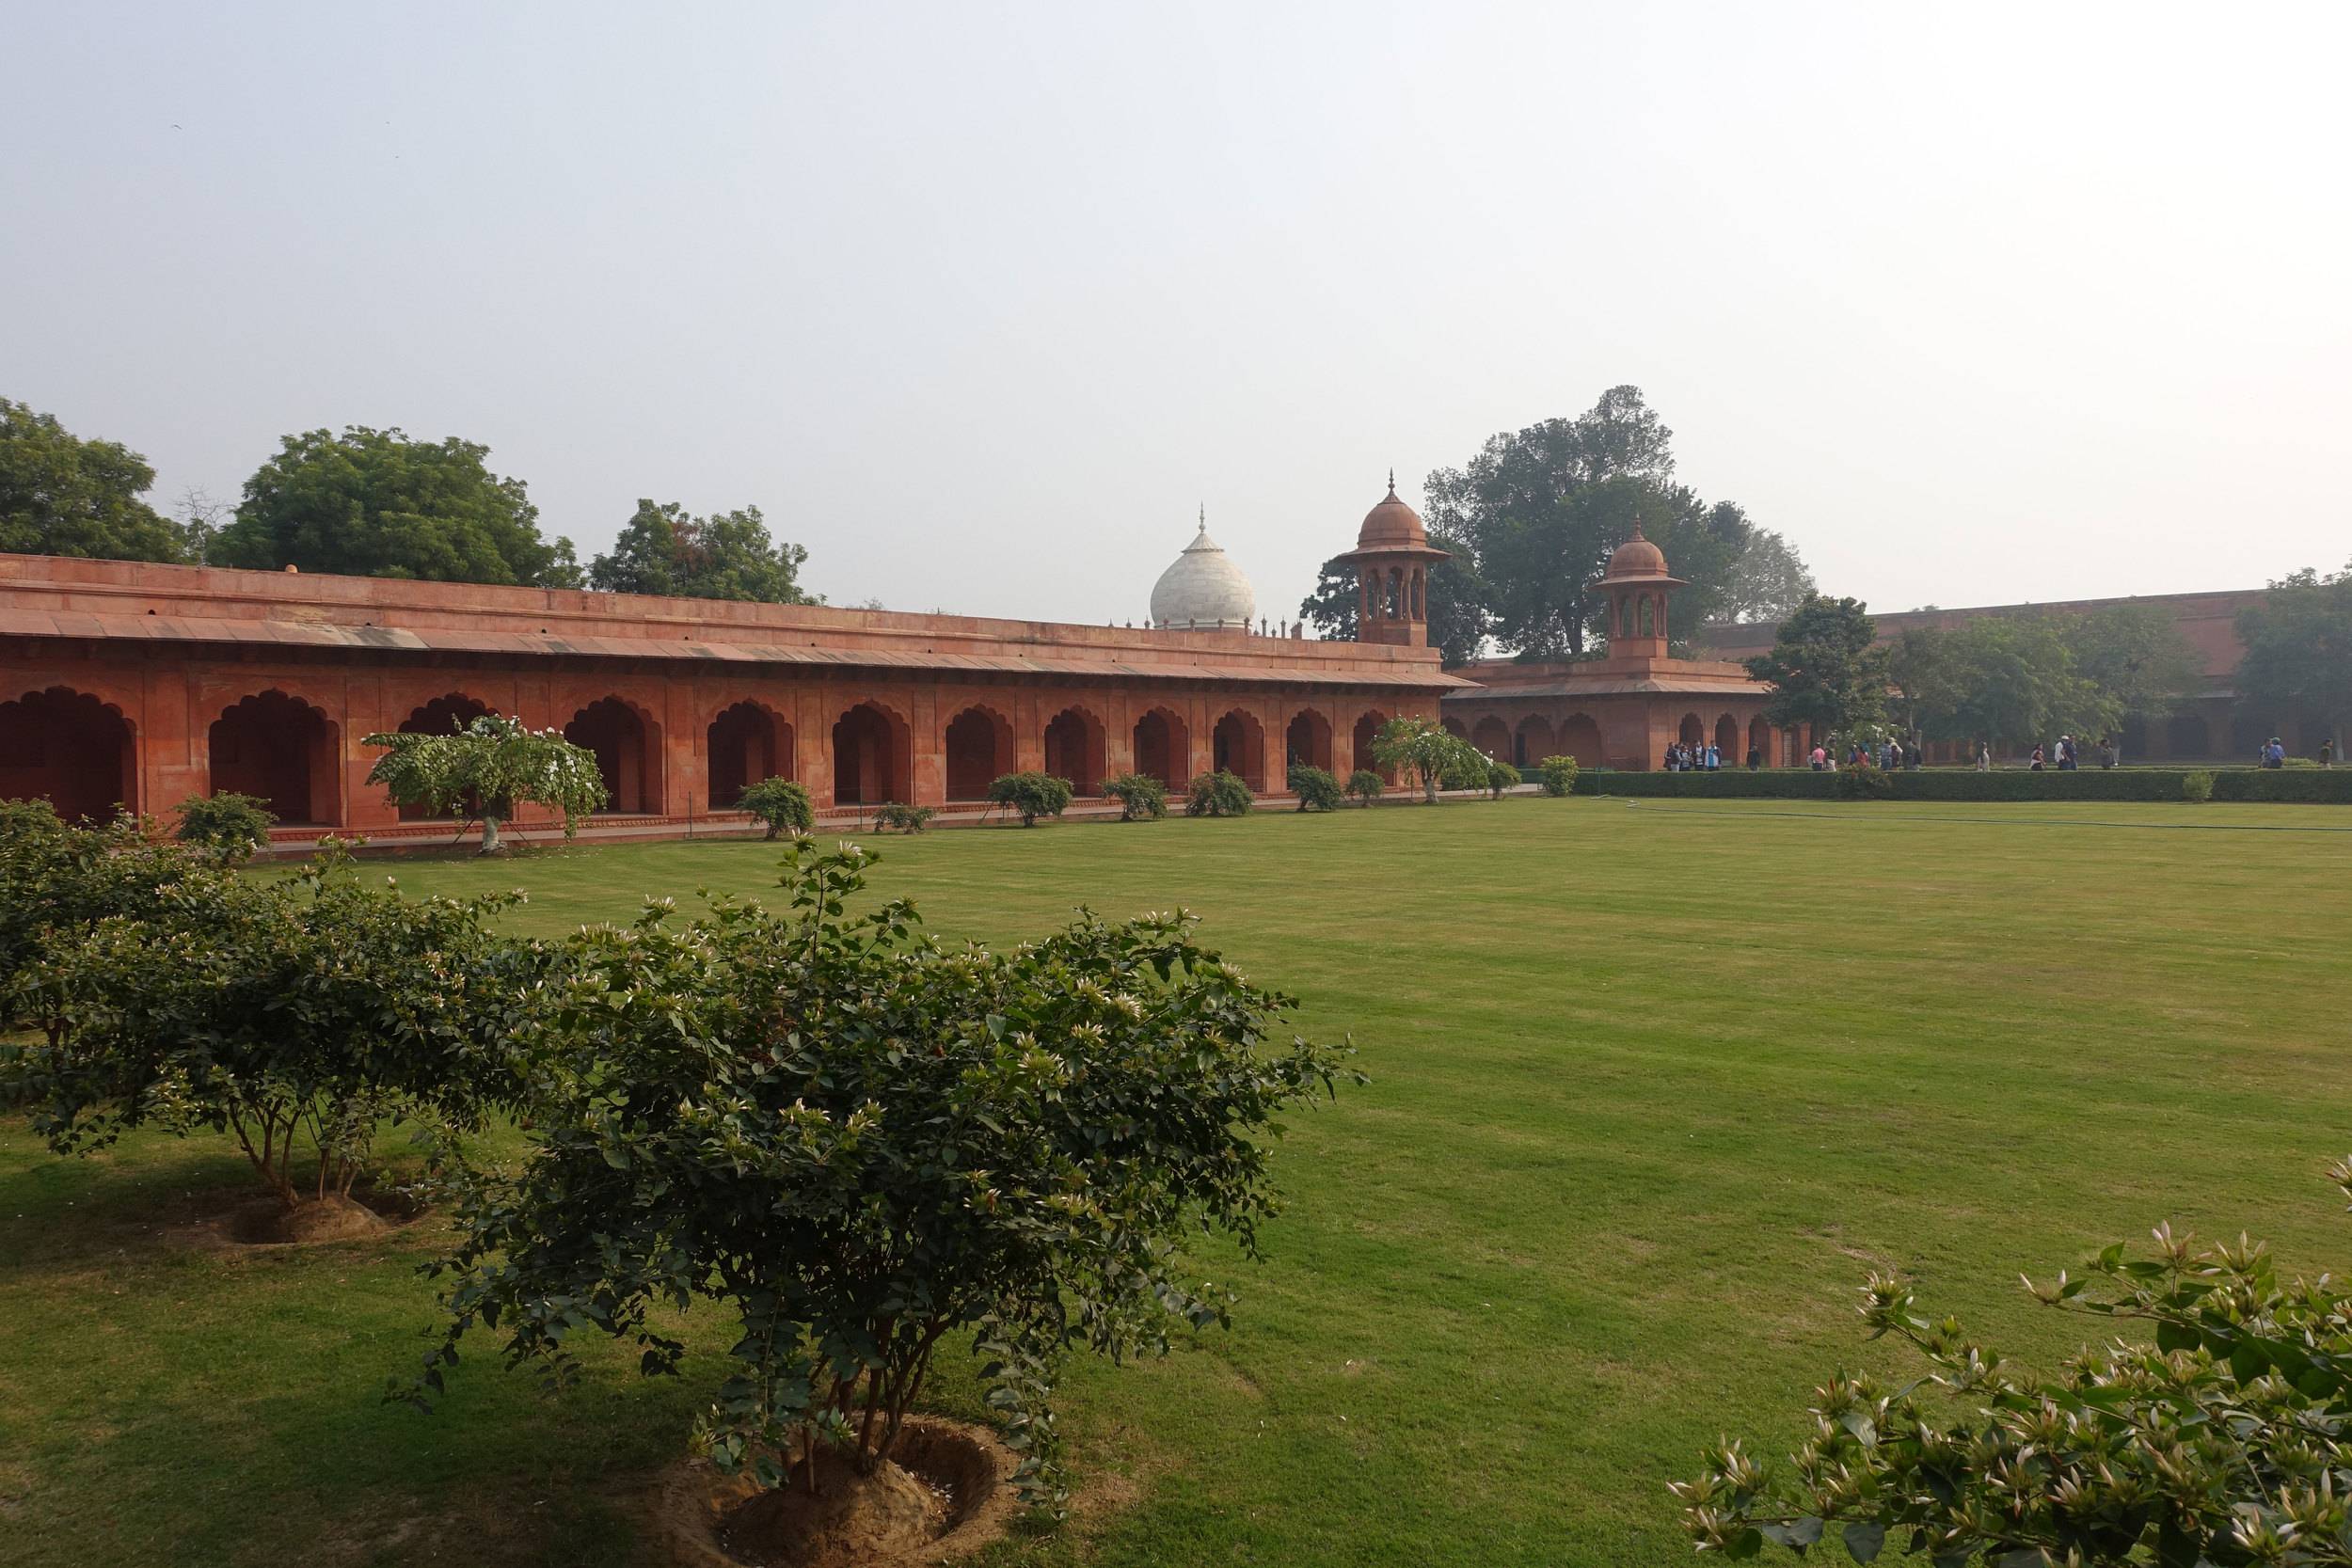 a view from a distance of the barracks